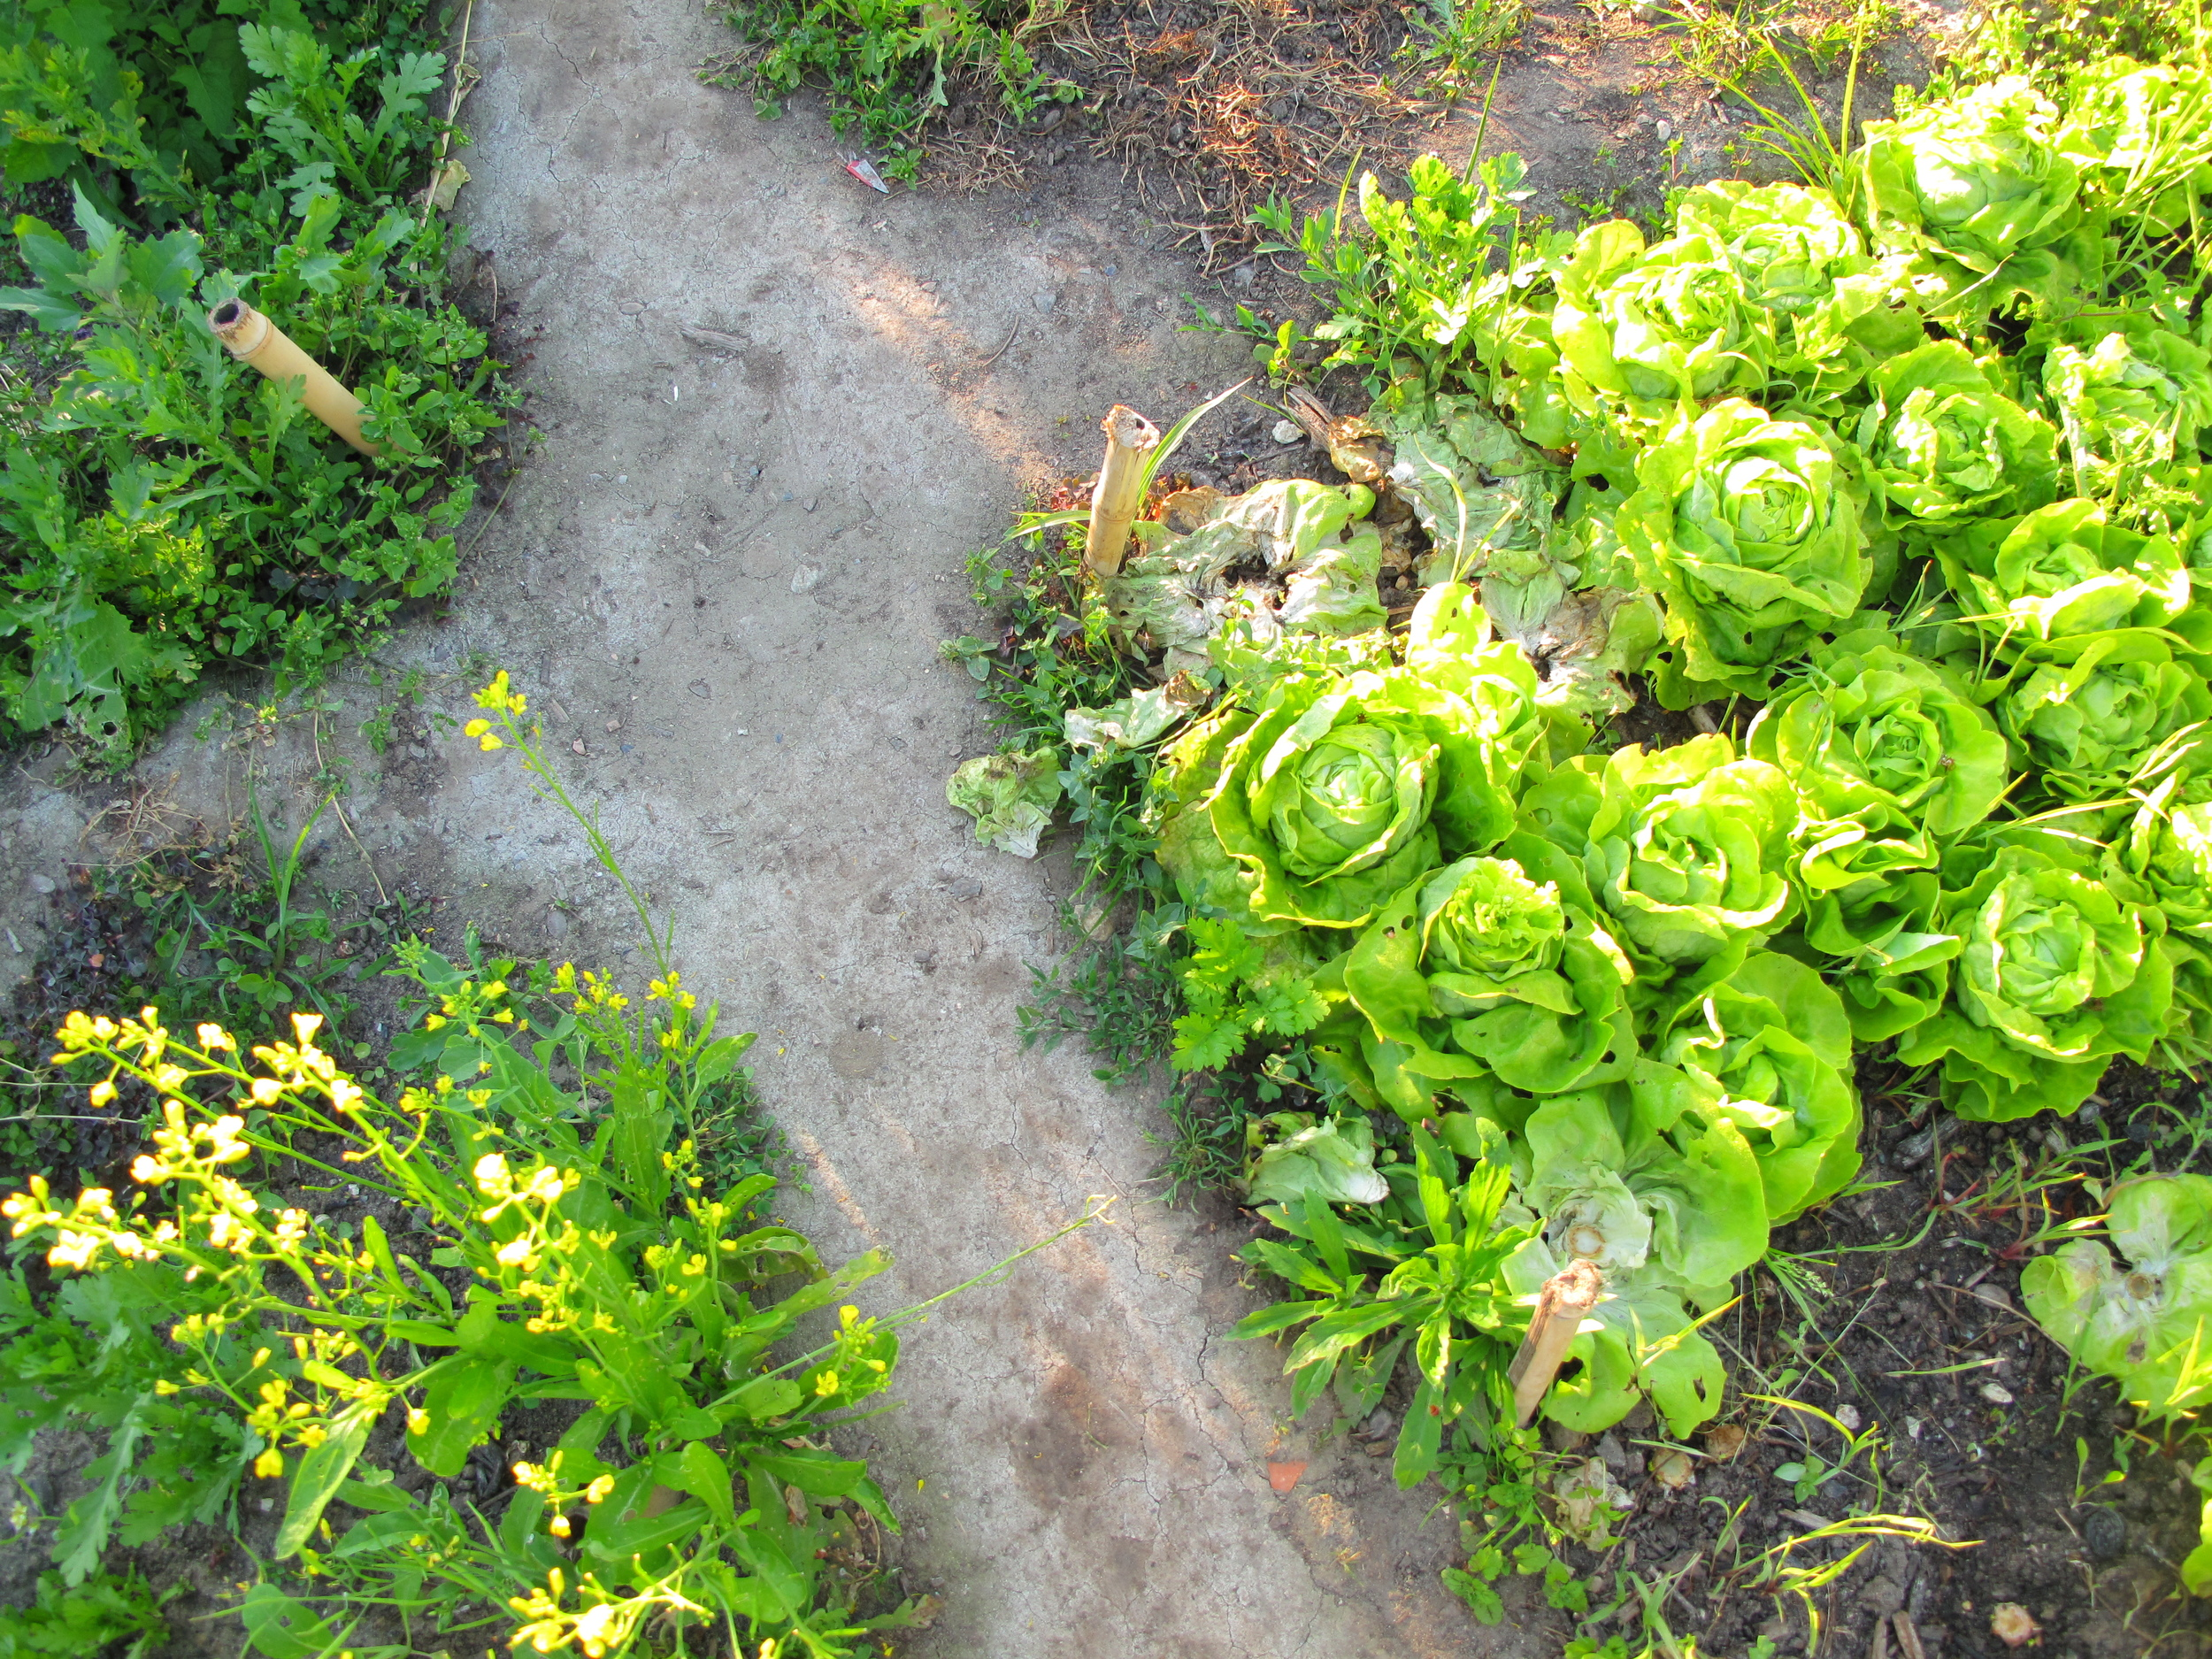 Paths between the lettuces at Plum Village